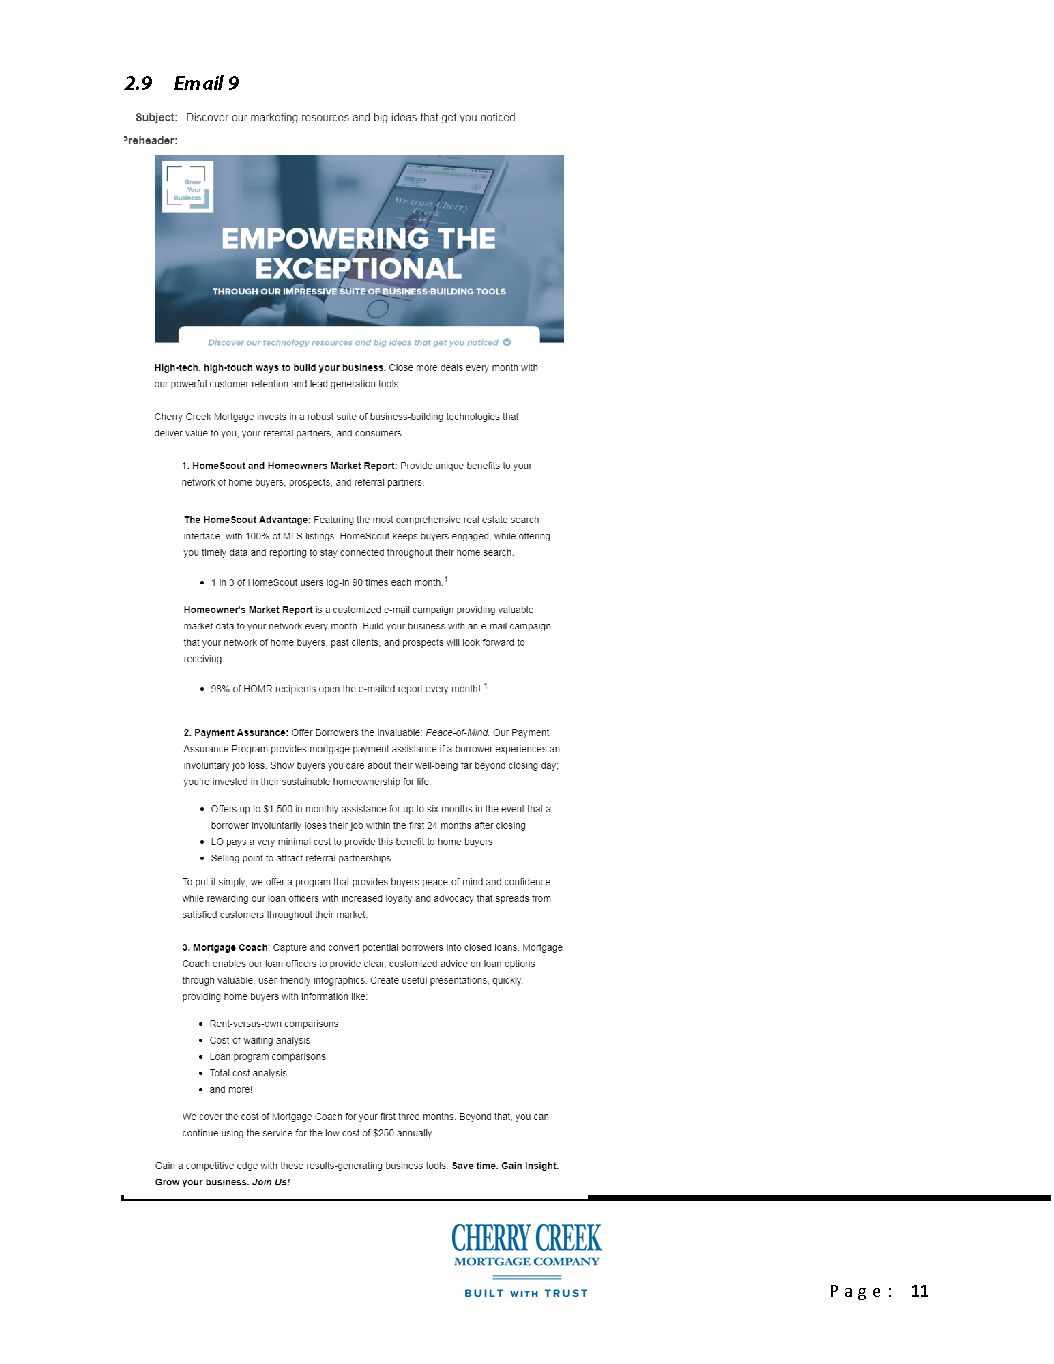 Jungo_Email_Drip_Campaigns-LO_Recruit_Page_11.png